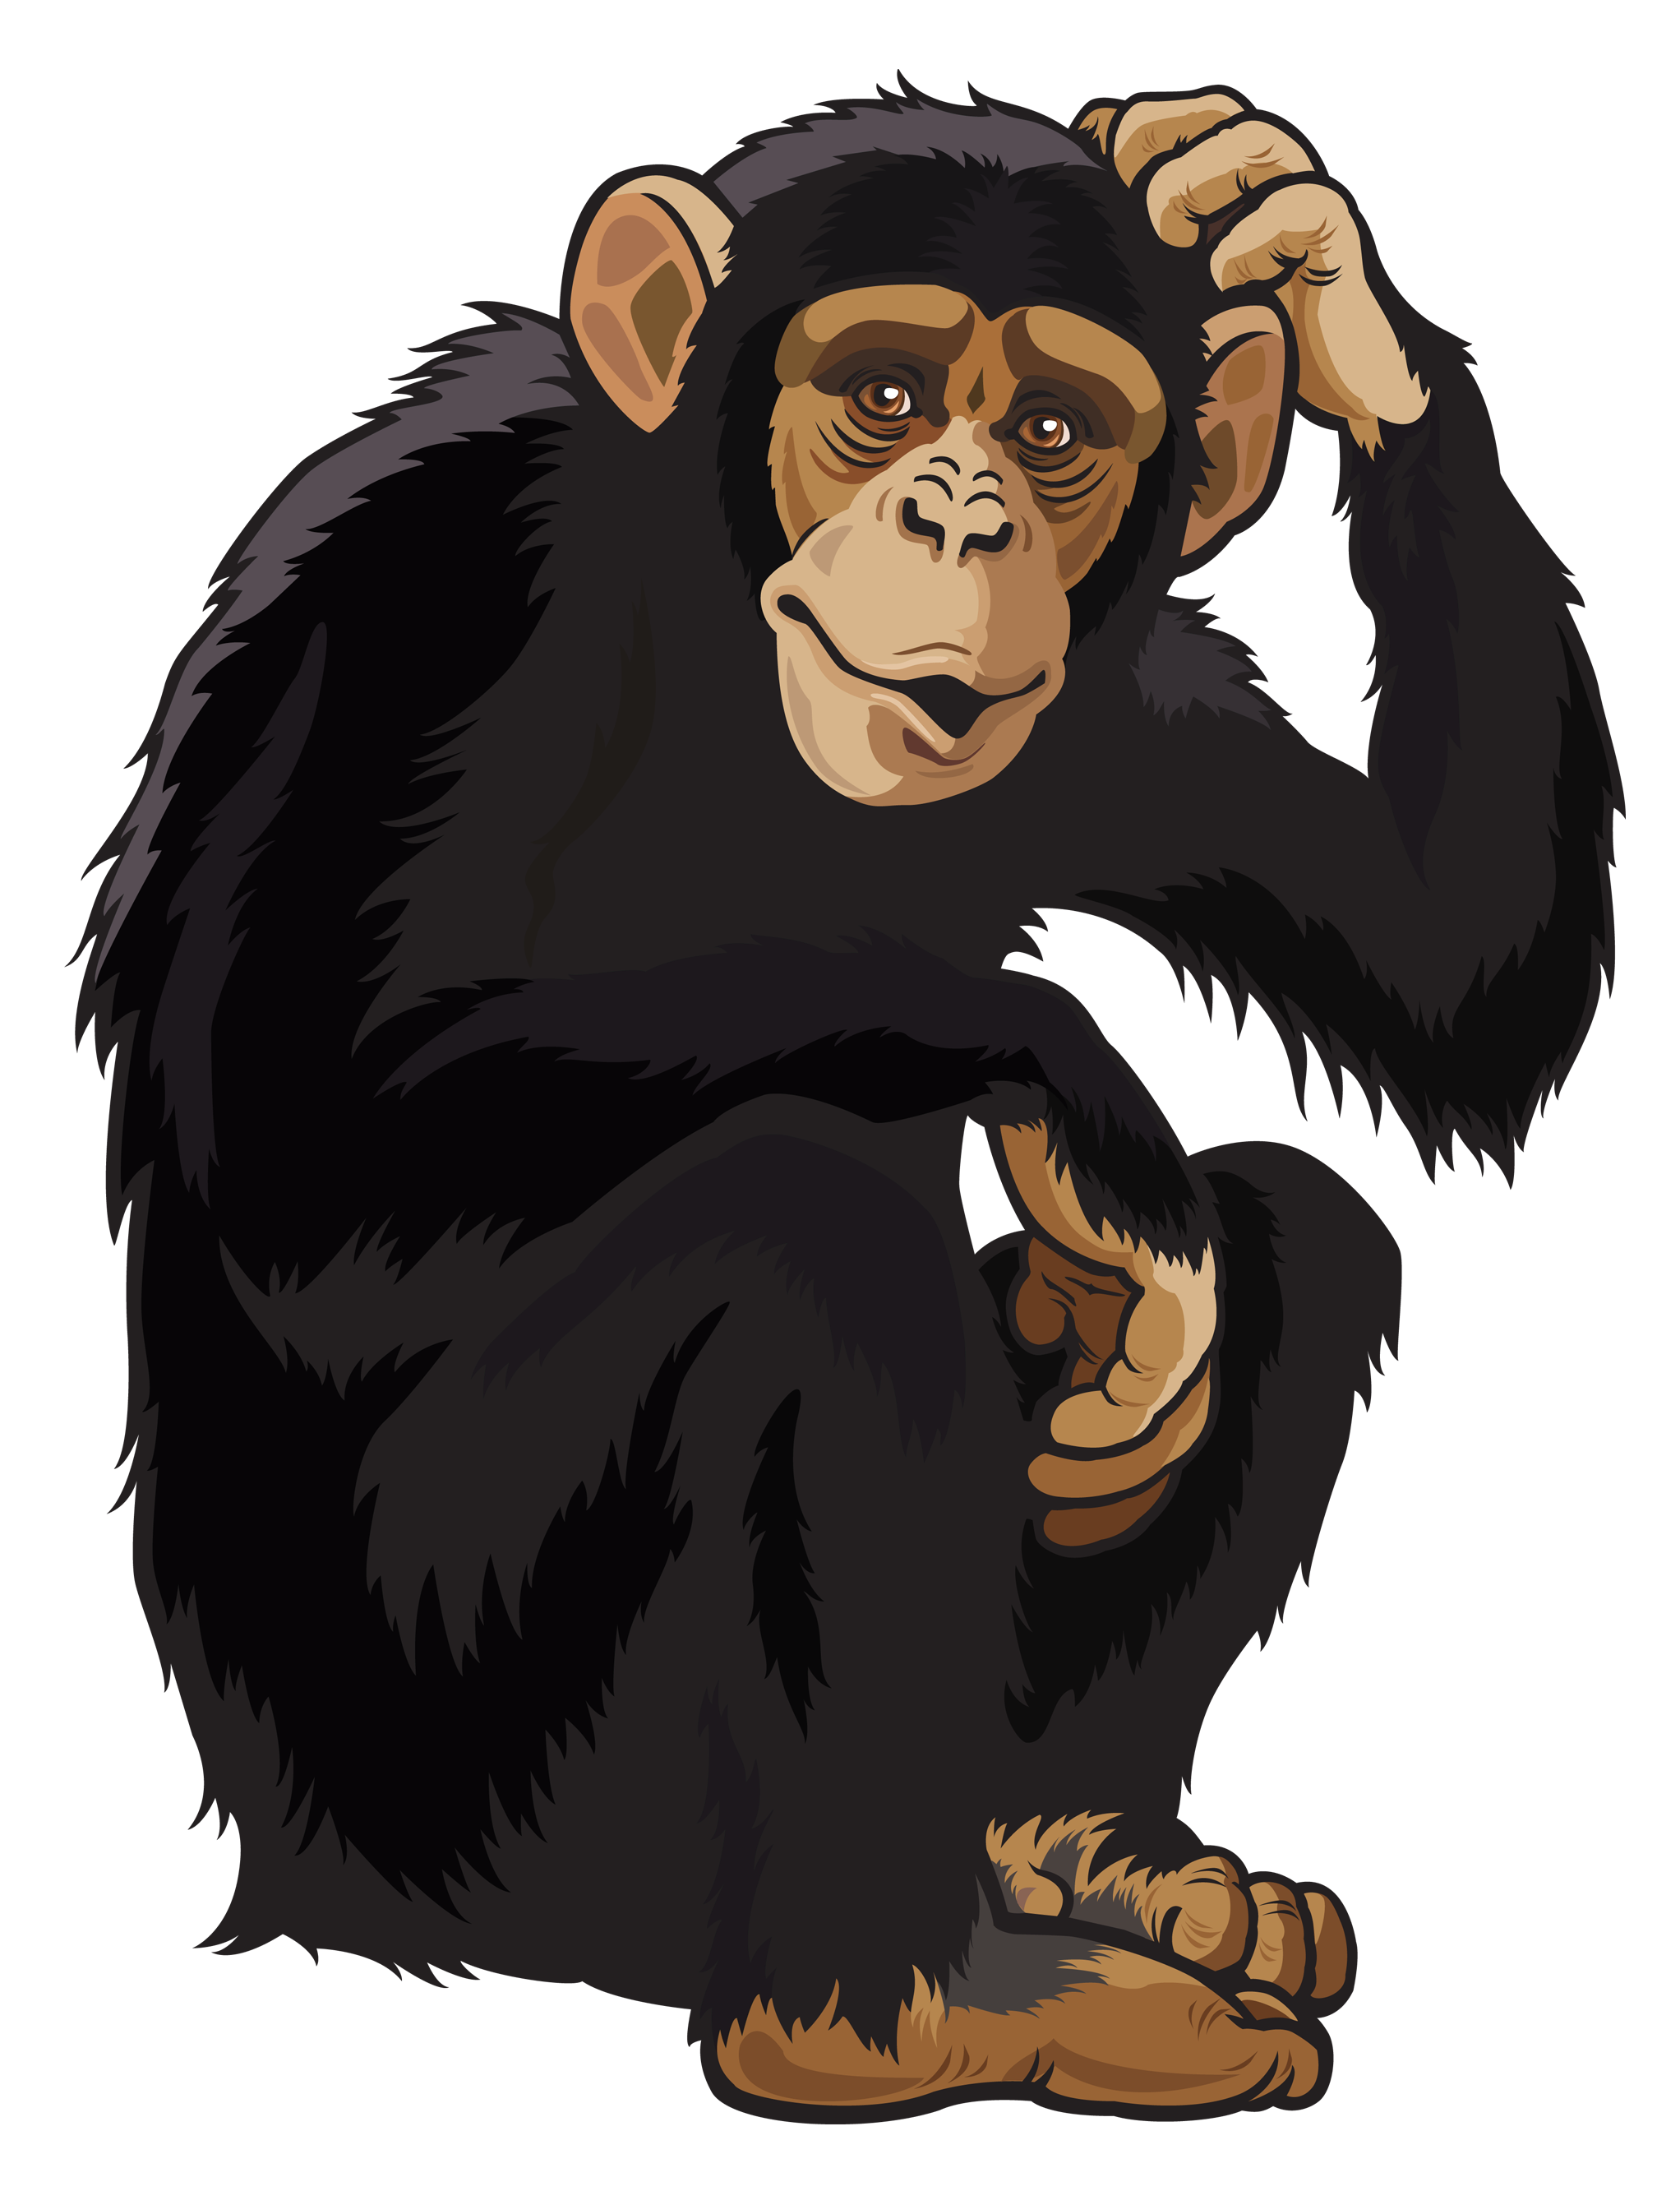 Clipart image gallery yopriceville. Monkey png images picture freeuse download